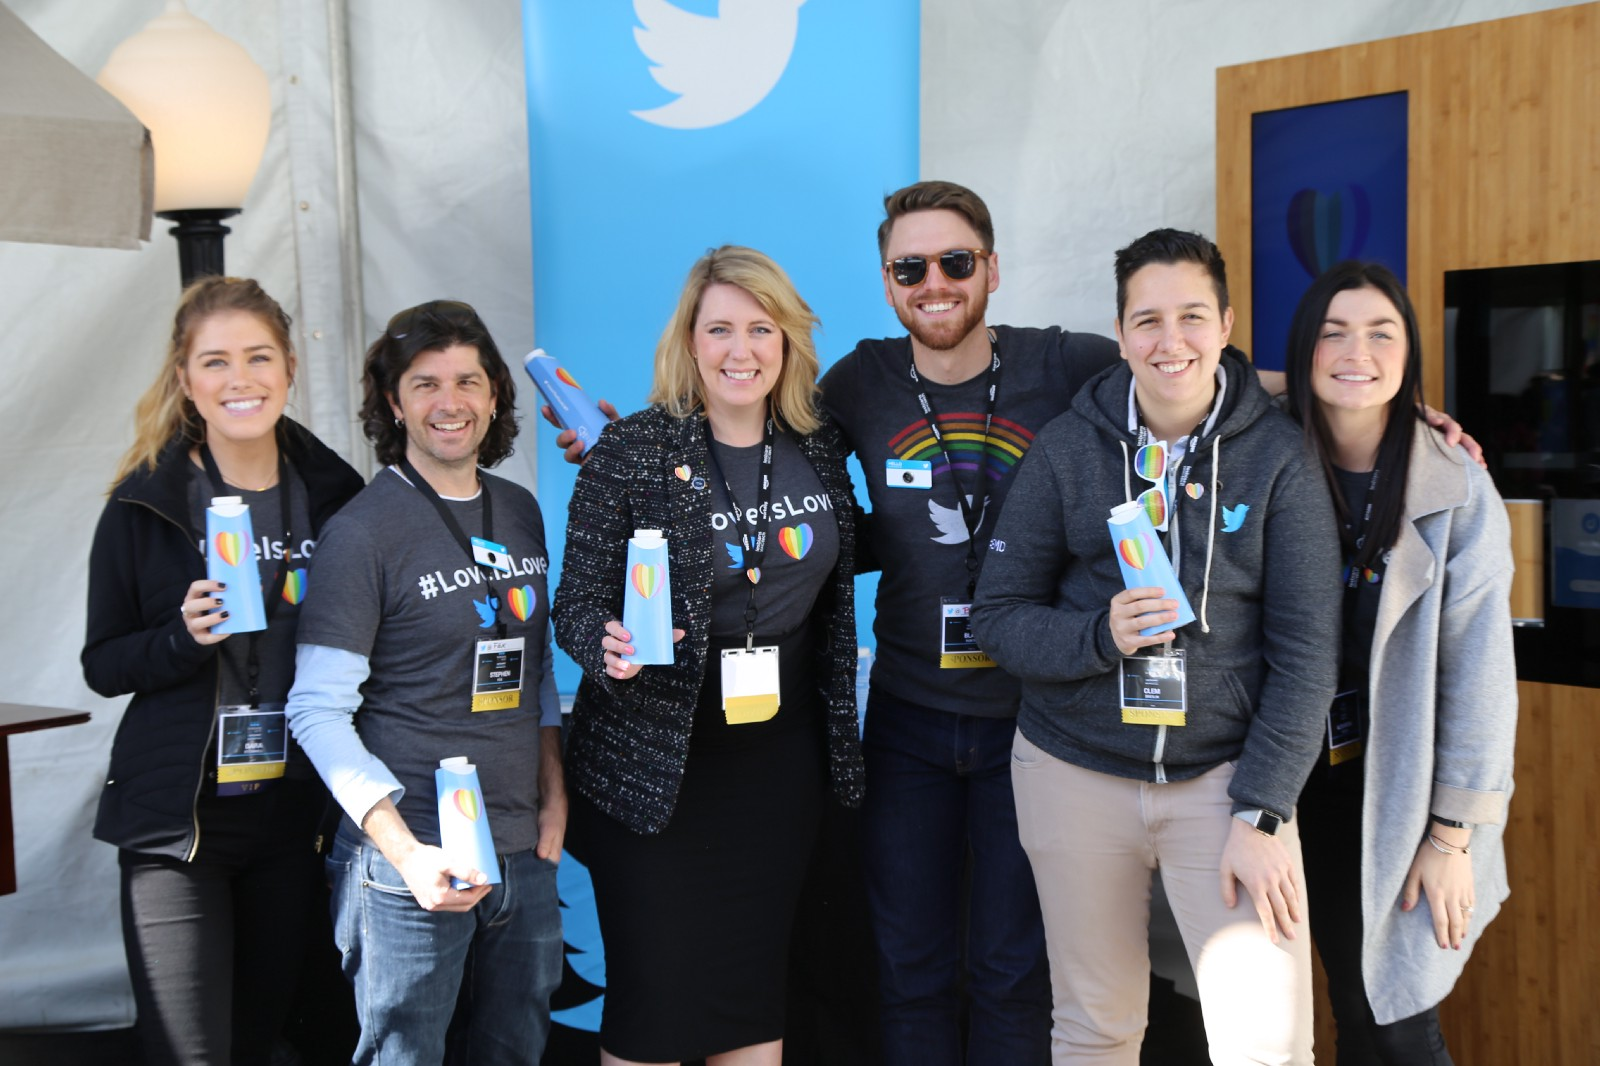 Twitter employees showcasing Drop Water at the Lesbians Who Tech summit